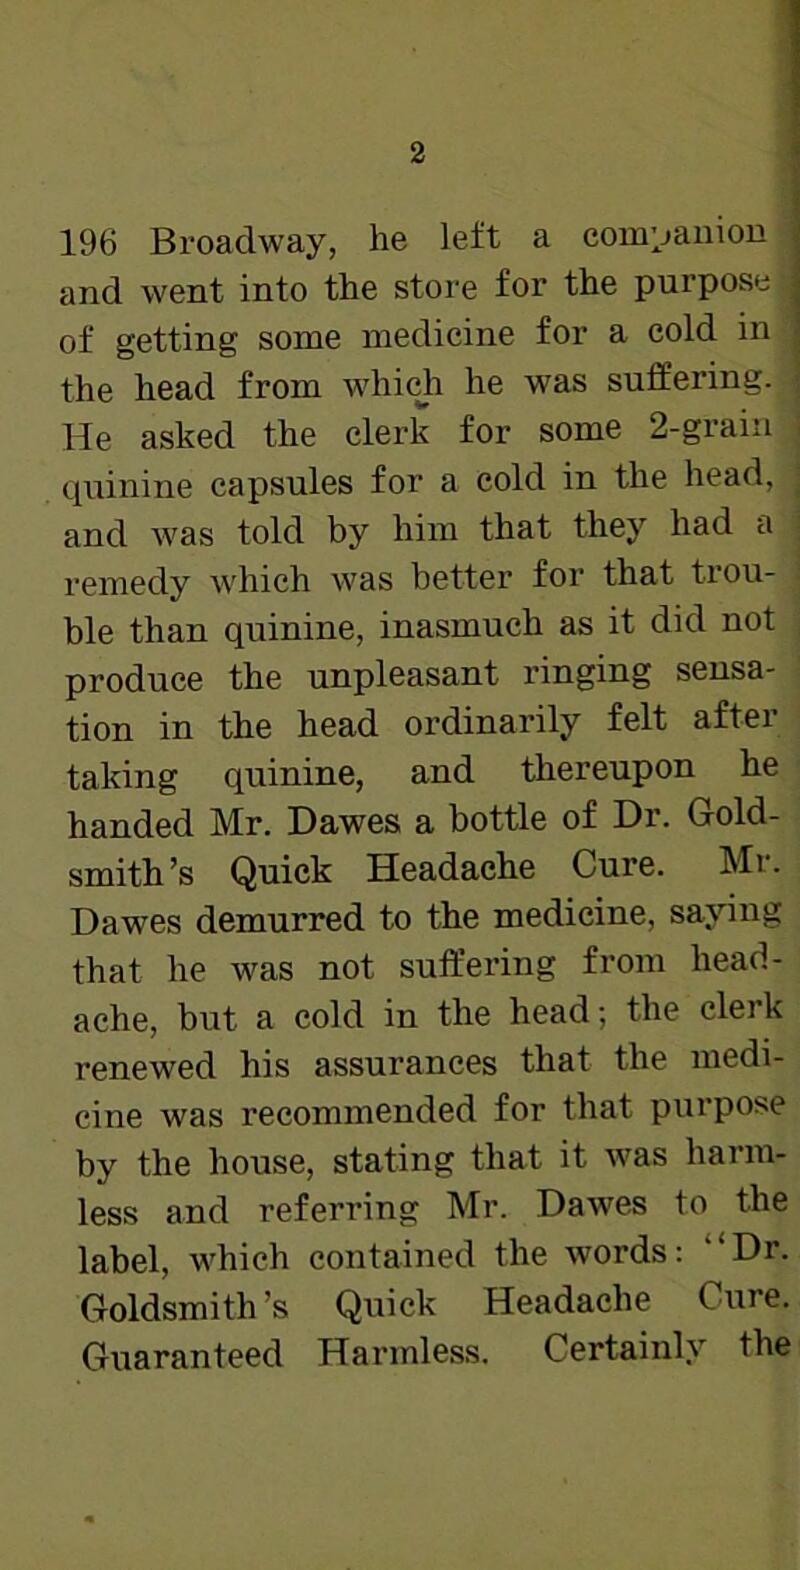 196 Broadway, he left a companion and went into the store for the purpose of getting some medicine for a cold in the head from which he was suffering, j He asked the clerk for some 2-grain i quinine capsules for a cold in the head, ; and was told by him that they had a - remedy which was better for that trou- ble than quinine, inasmuch as it did not produce the unpleasant ringing sensa- tion in the head ordinarily felt after taking quinine, and thereupon he handed Mr. Dawes a bottle of Dr. Gold- smith's Quick Headache Cure. Mr. Dawes demurred to the medicine, saying that he was not suffering from head- ache, but a cold in the head; the clerk renewed his assurances that the medi- cine was recommended for that purpose by the house, stating that it was harm- less and referring Mr. Dawes to the label, which contained the words: ''Dr. Goldsmith's Quick Headache Cure. Guaranteed Harmless. Certainly the